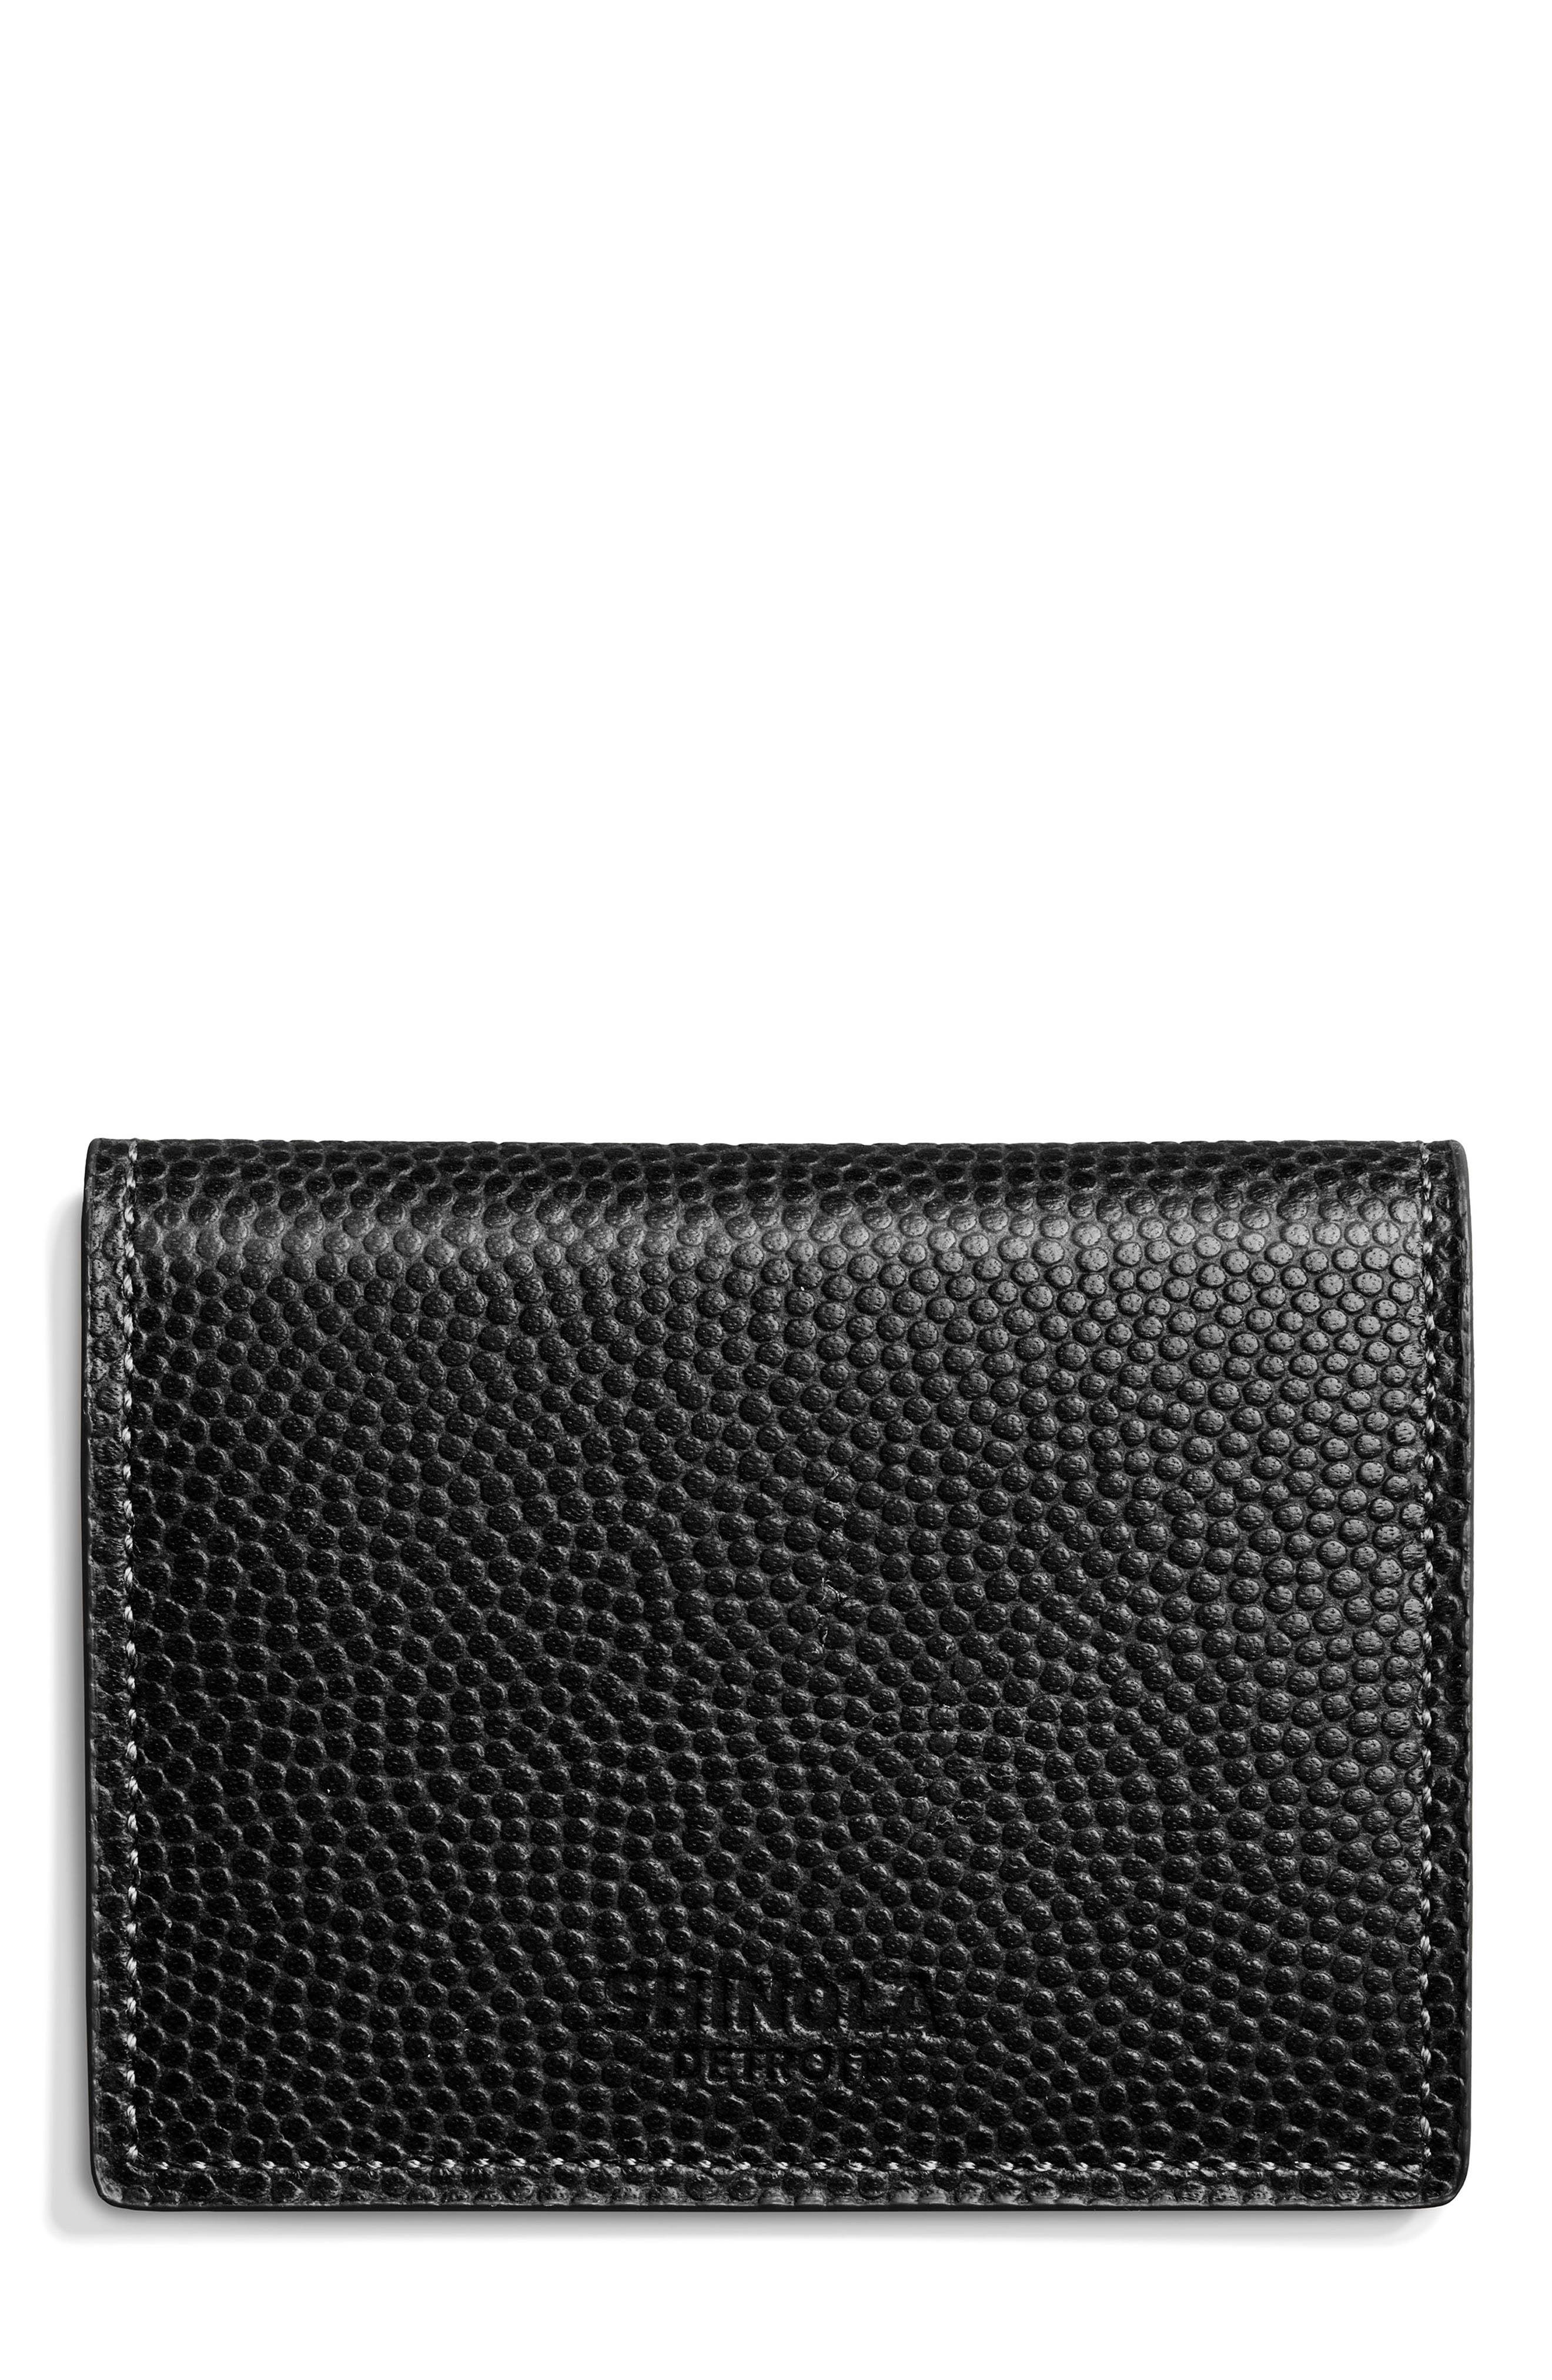 Leather Wallet,                         Main,                         color, Black